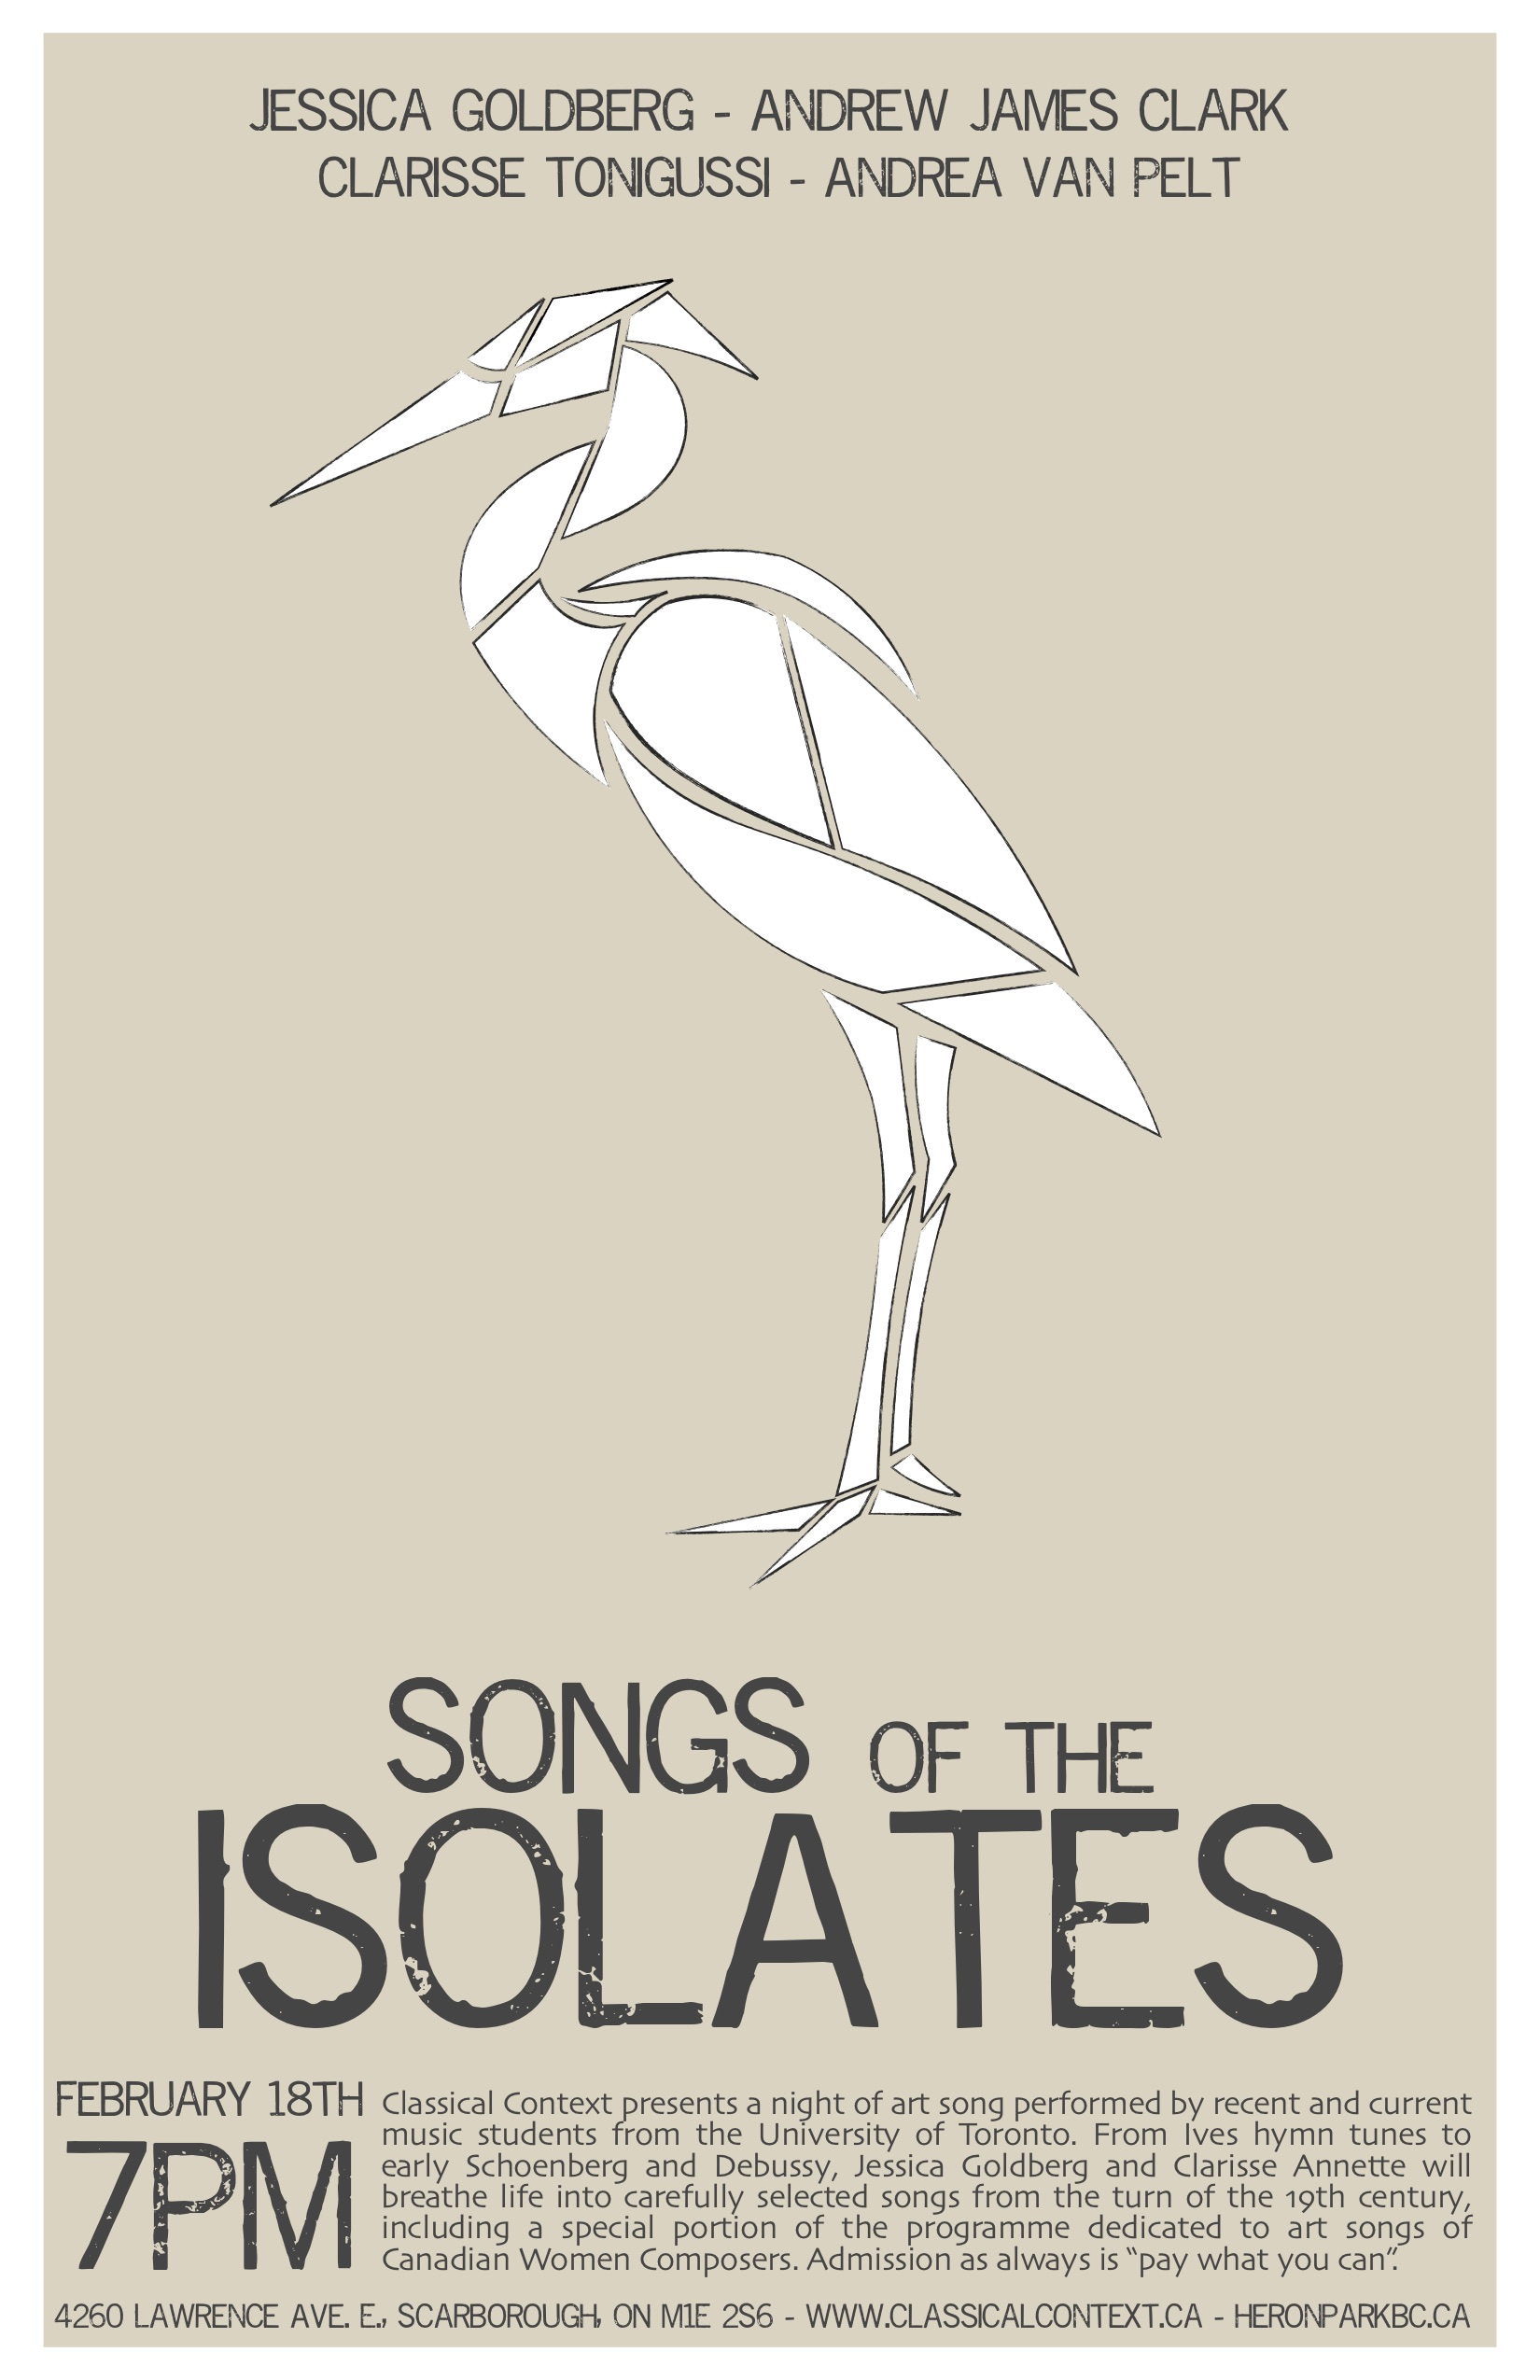 Songs of the isolates - February 2017